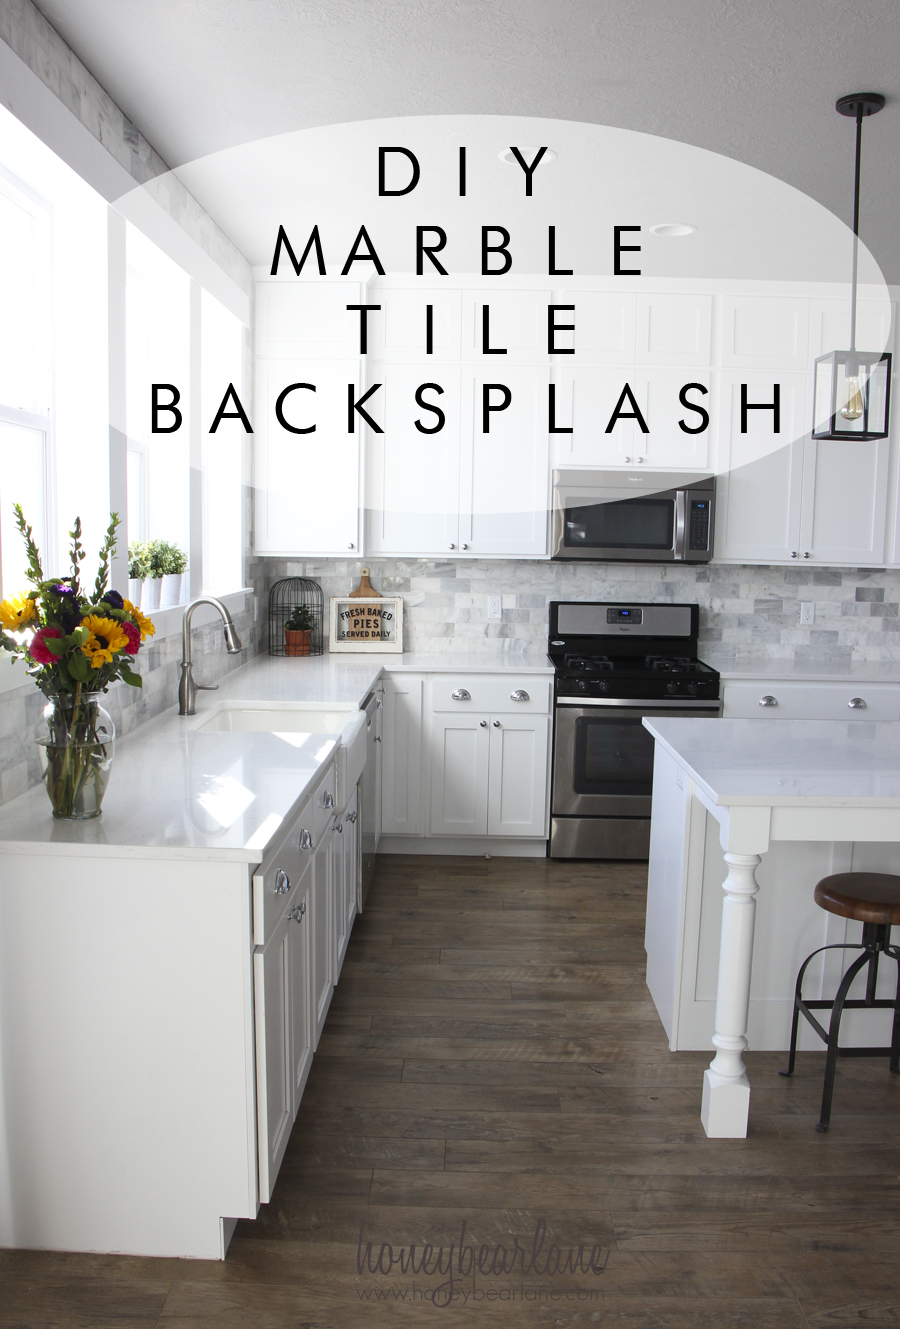 My diy marble backsplash honeybear lane diy marble tile backsplash dailygadgetfo Choice Image